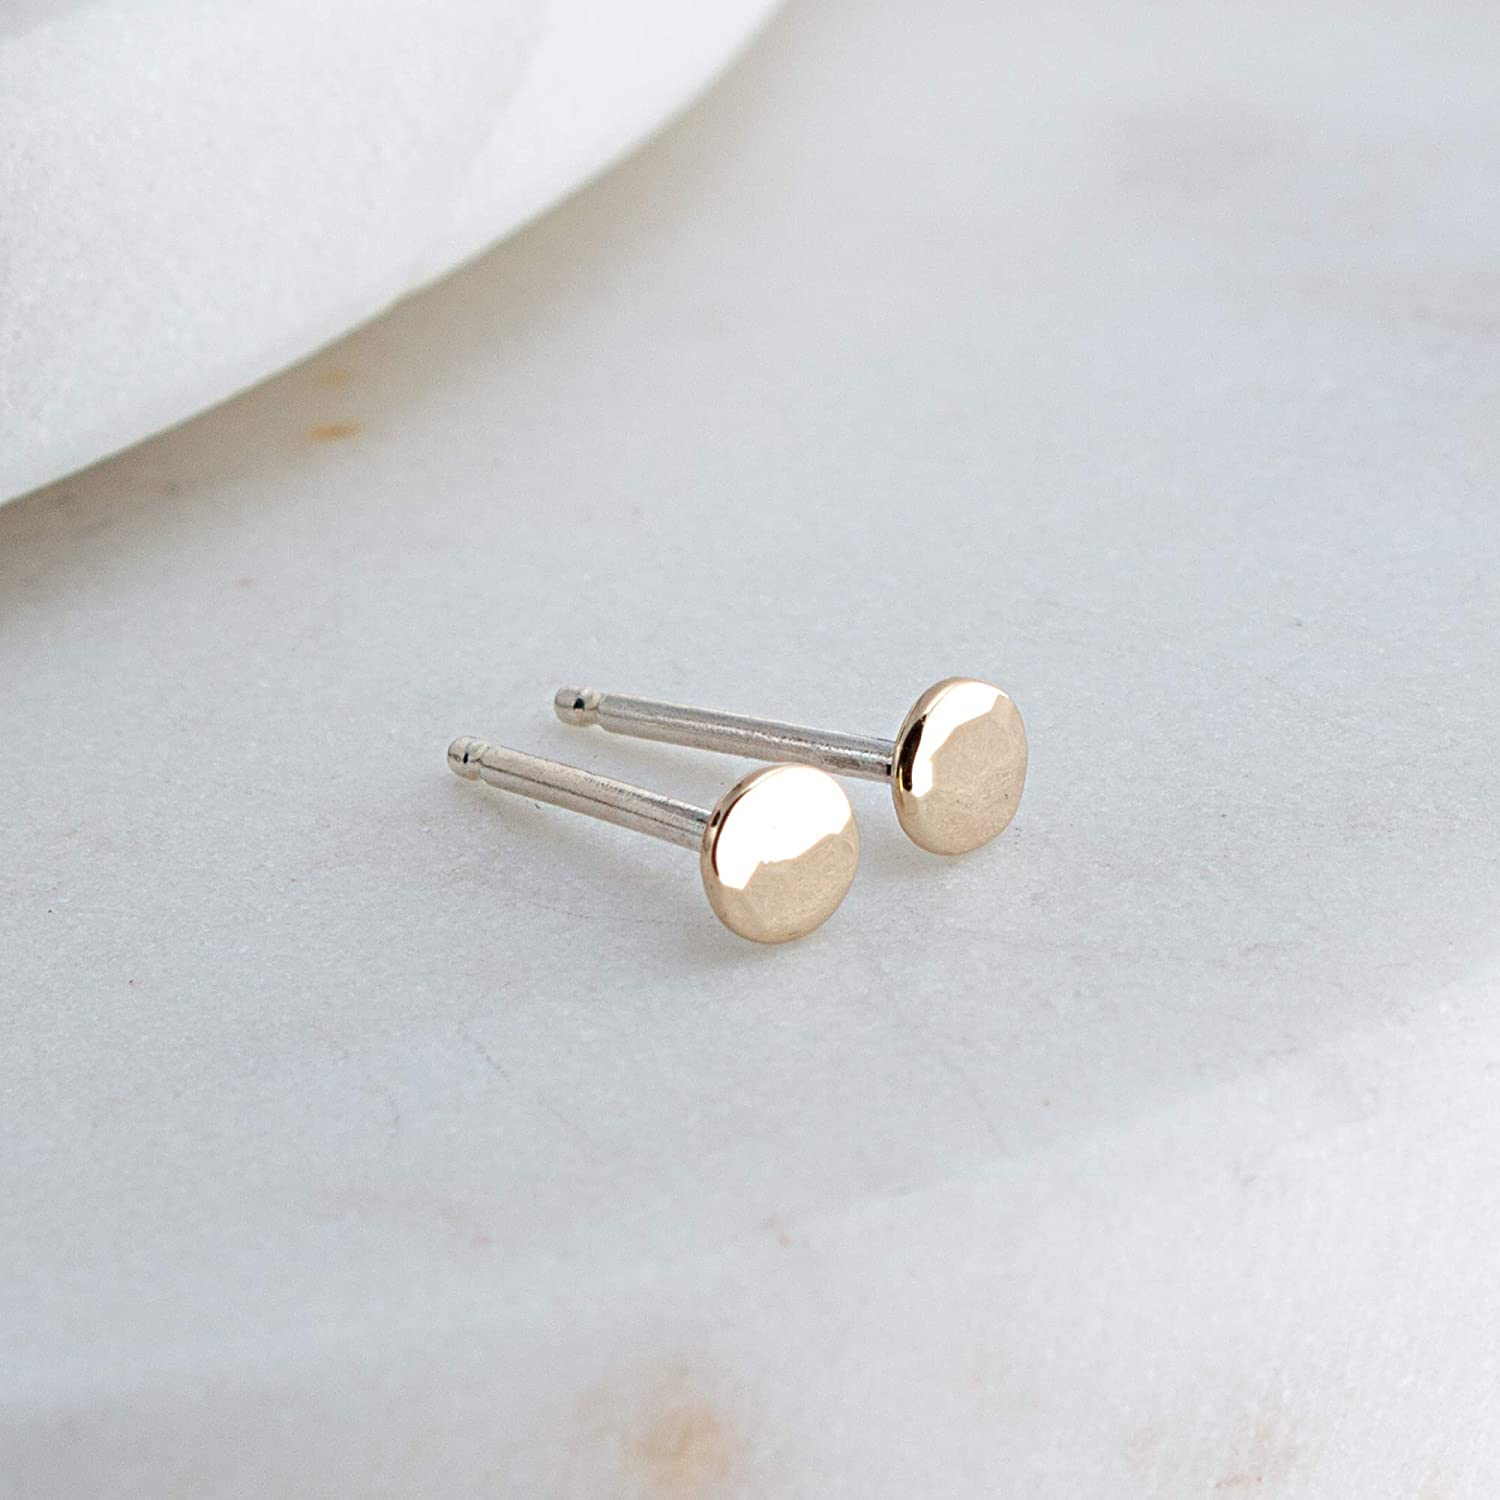 14K Solid Gold Earrings Hammered Disc Dot 3mm Studs with Sterling Silver Posts SG-SS-3MM-Hammered